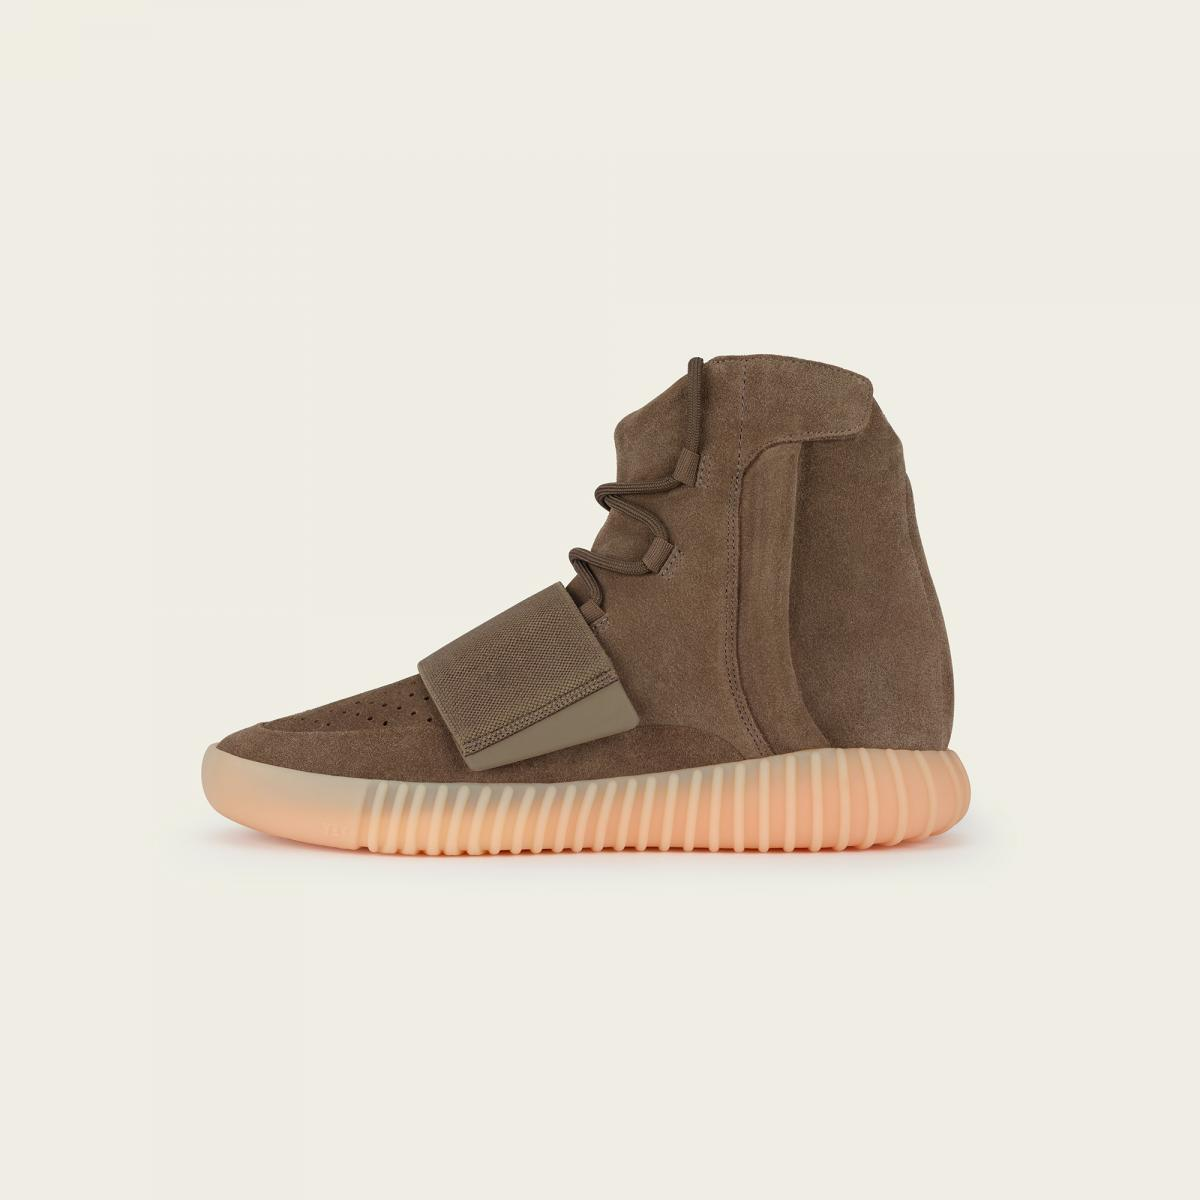 wholesale dealer 9fa72 7bf5d Yeezy Boost 750 'Chocolate' Release: Where & When To Buy ...